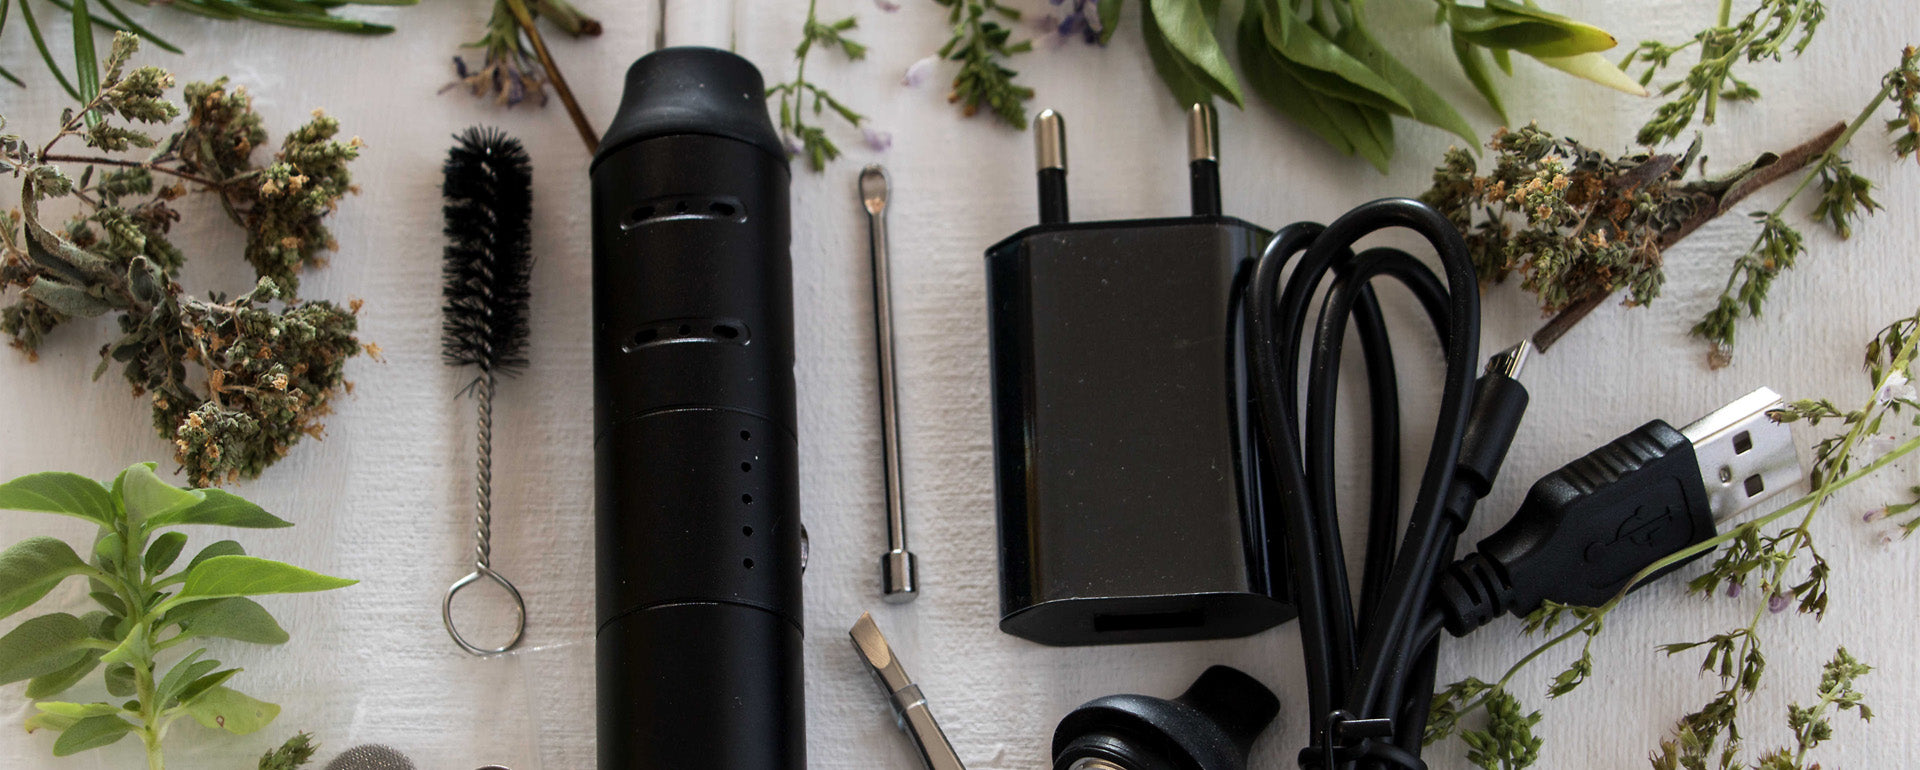 Top CannMart vapes of 2019